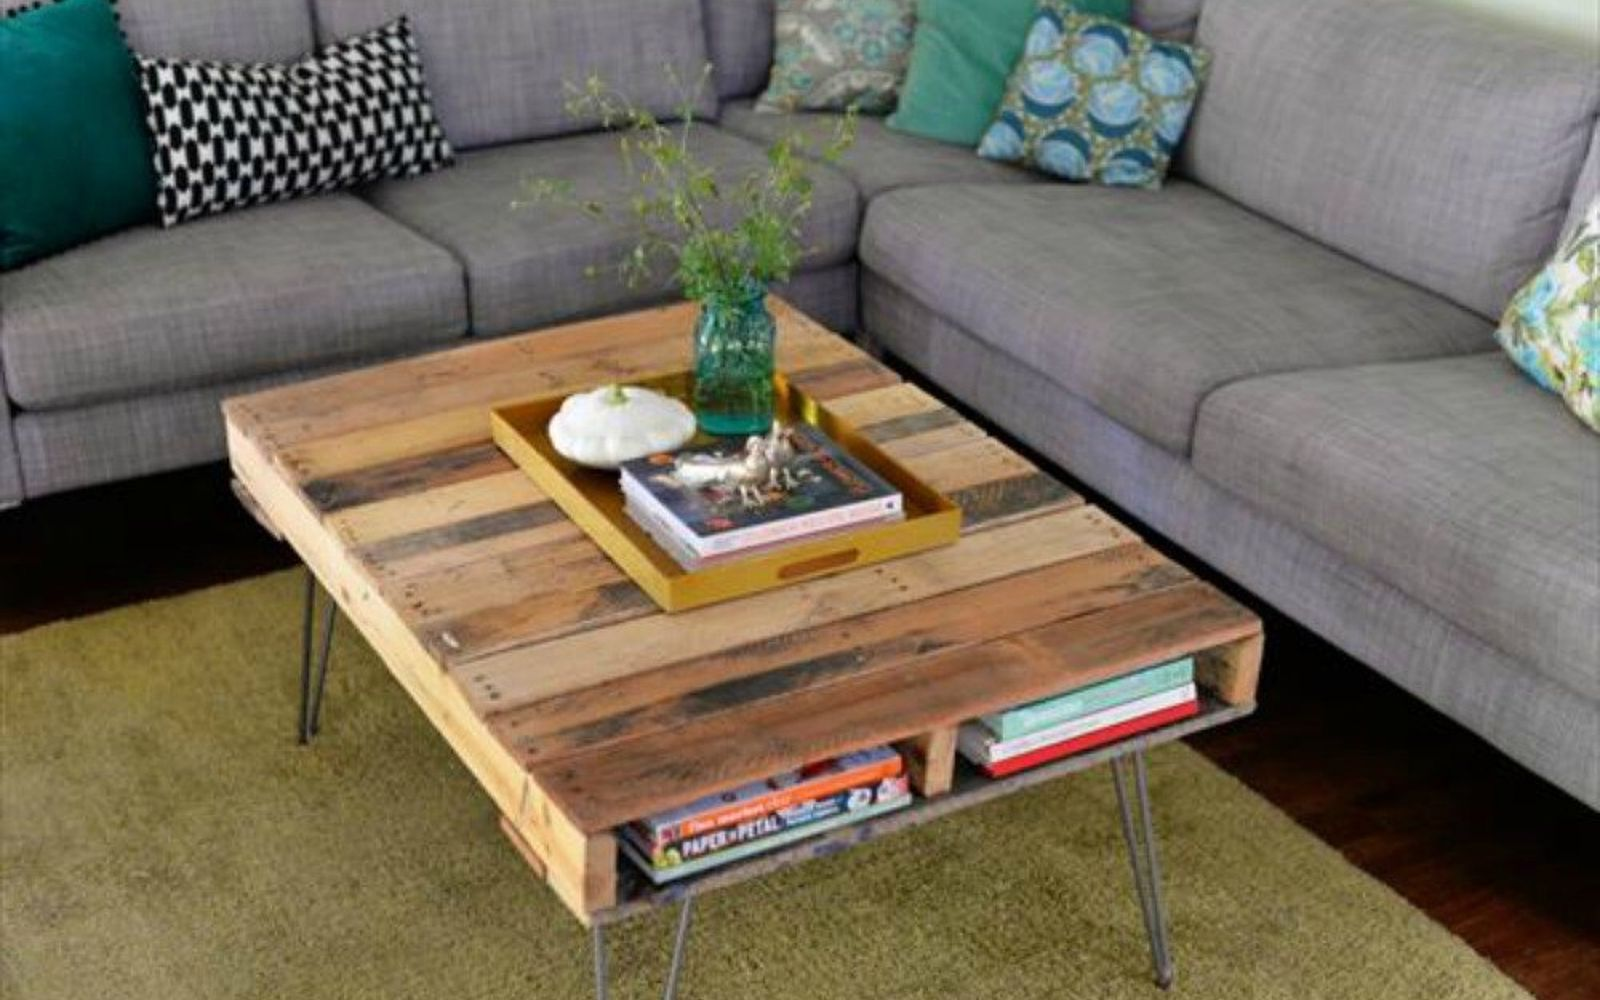 s decorate your living room for under 10 with these 15 ideas, Assemble a coffee table from old pallets